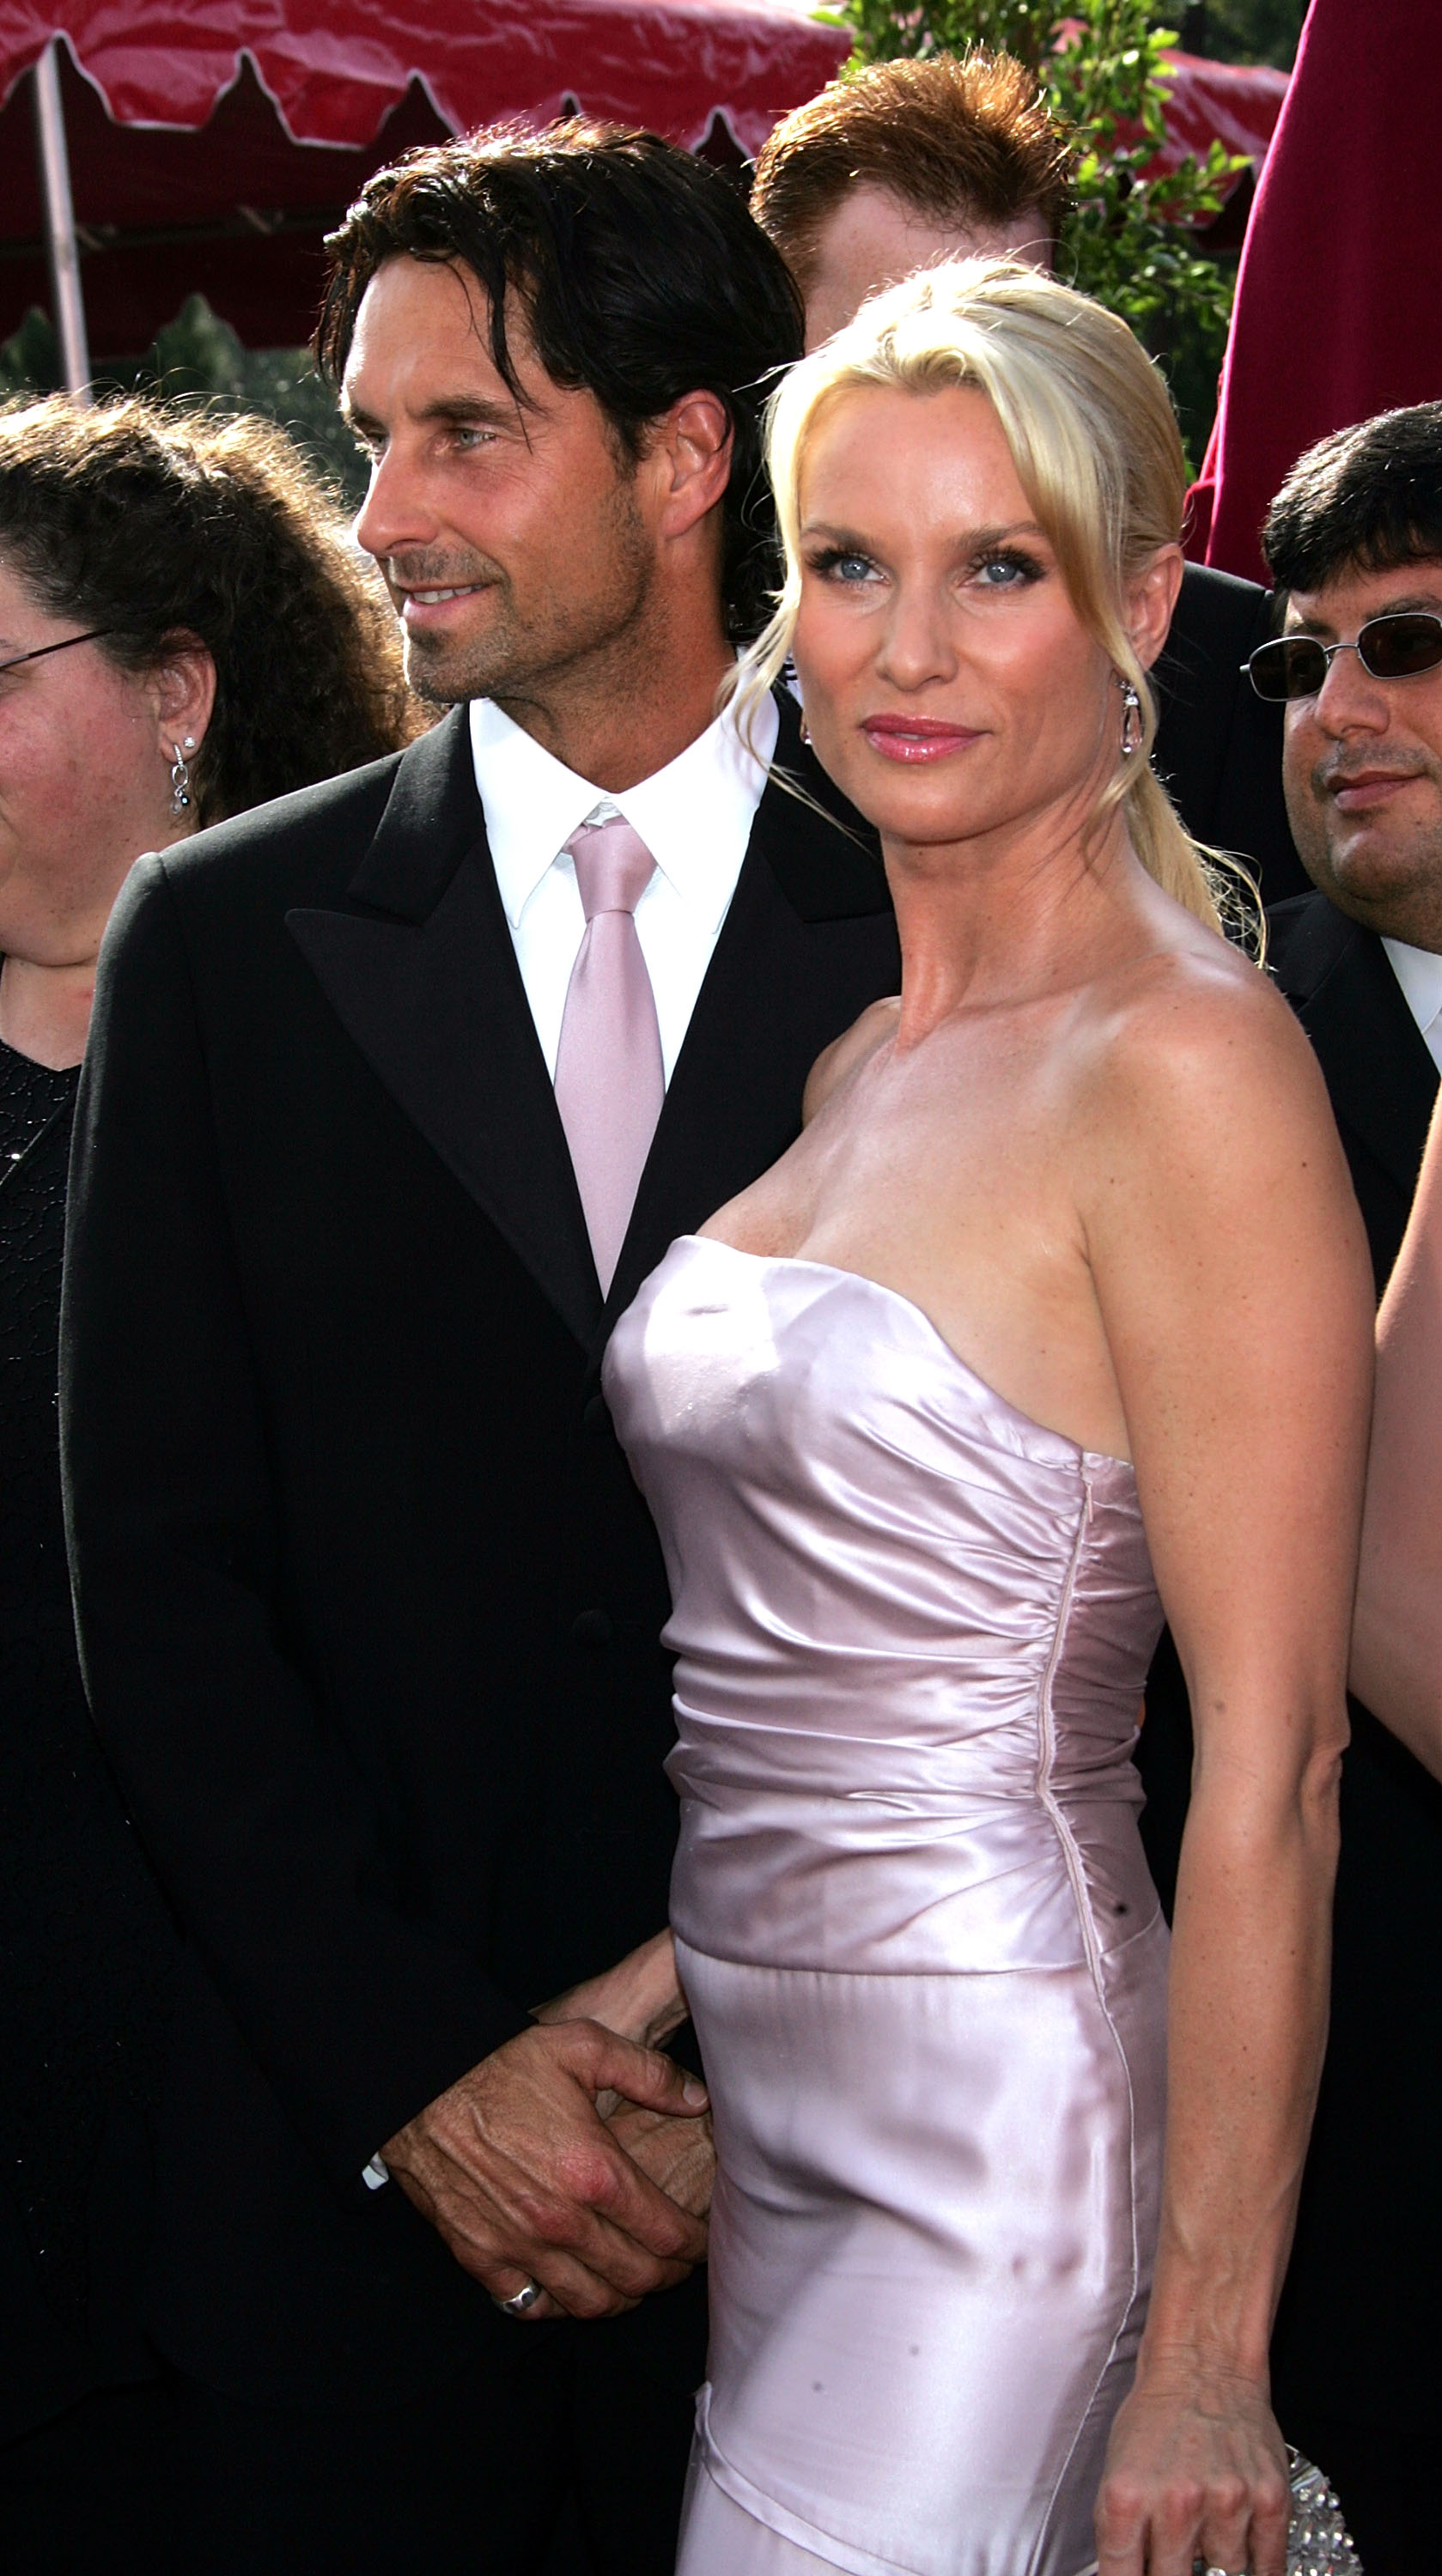 Actress Nicollette Sheridan (R) and her husband Harry Hamlin arrive at the 57th Annual Emmy Awards held at the Shrine Auditorium on September 18, 2005, in Los Angeles, California. (Getty Images)